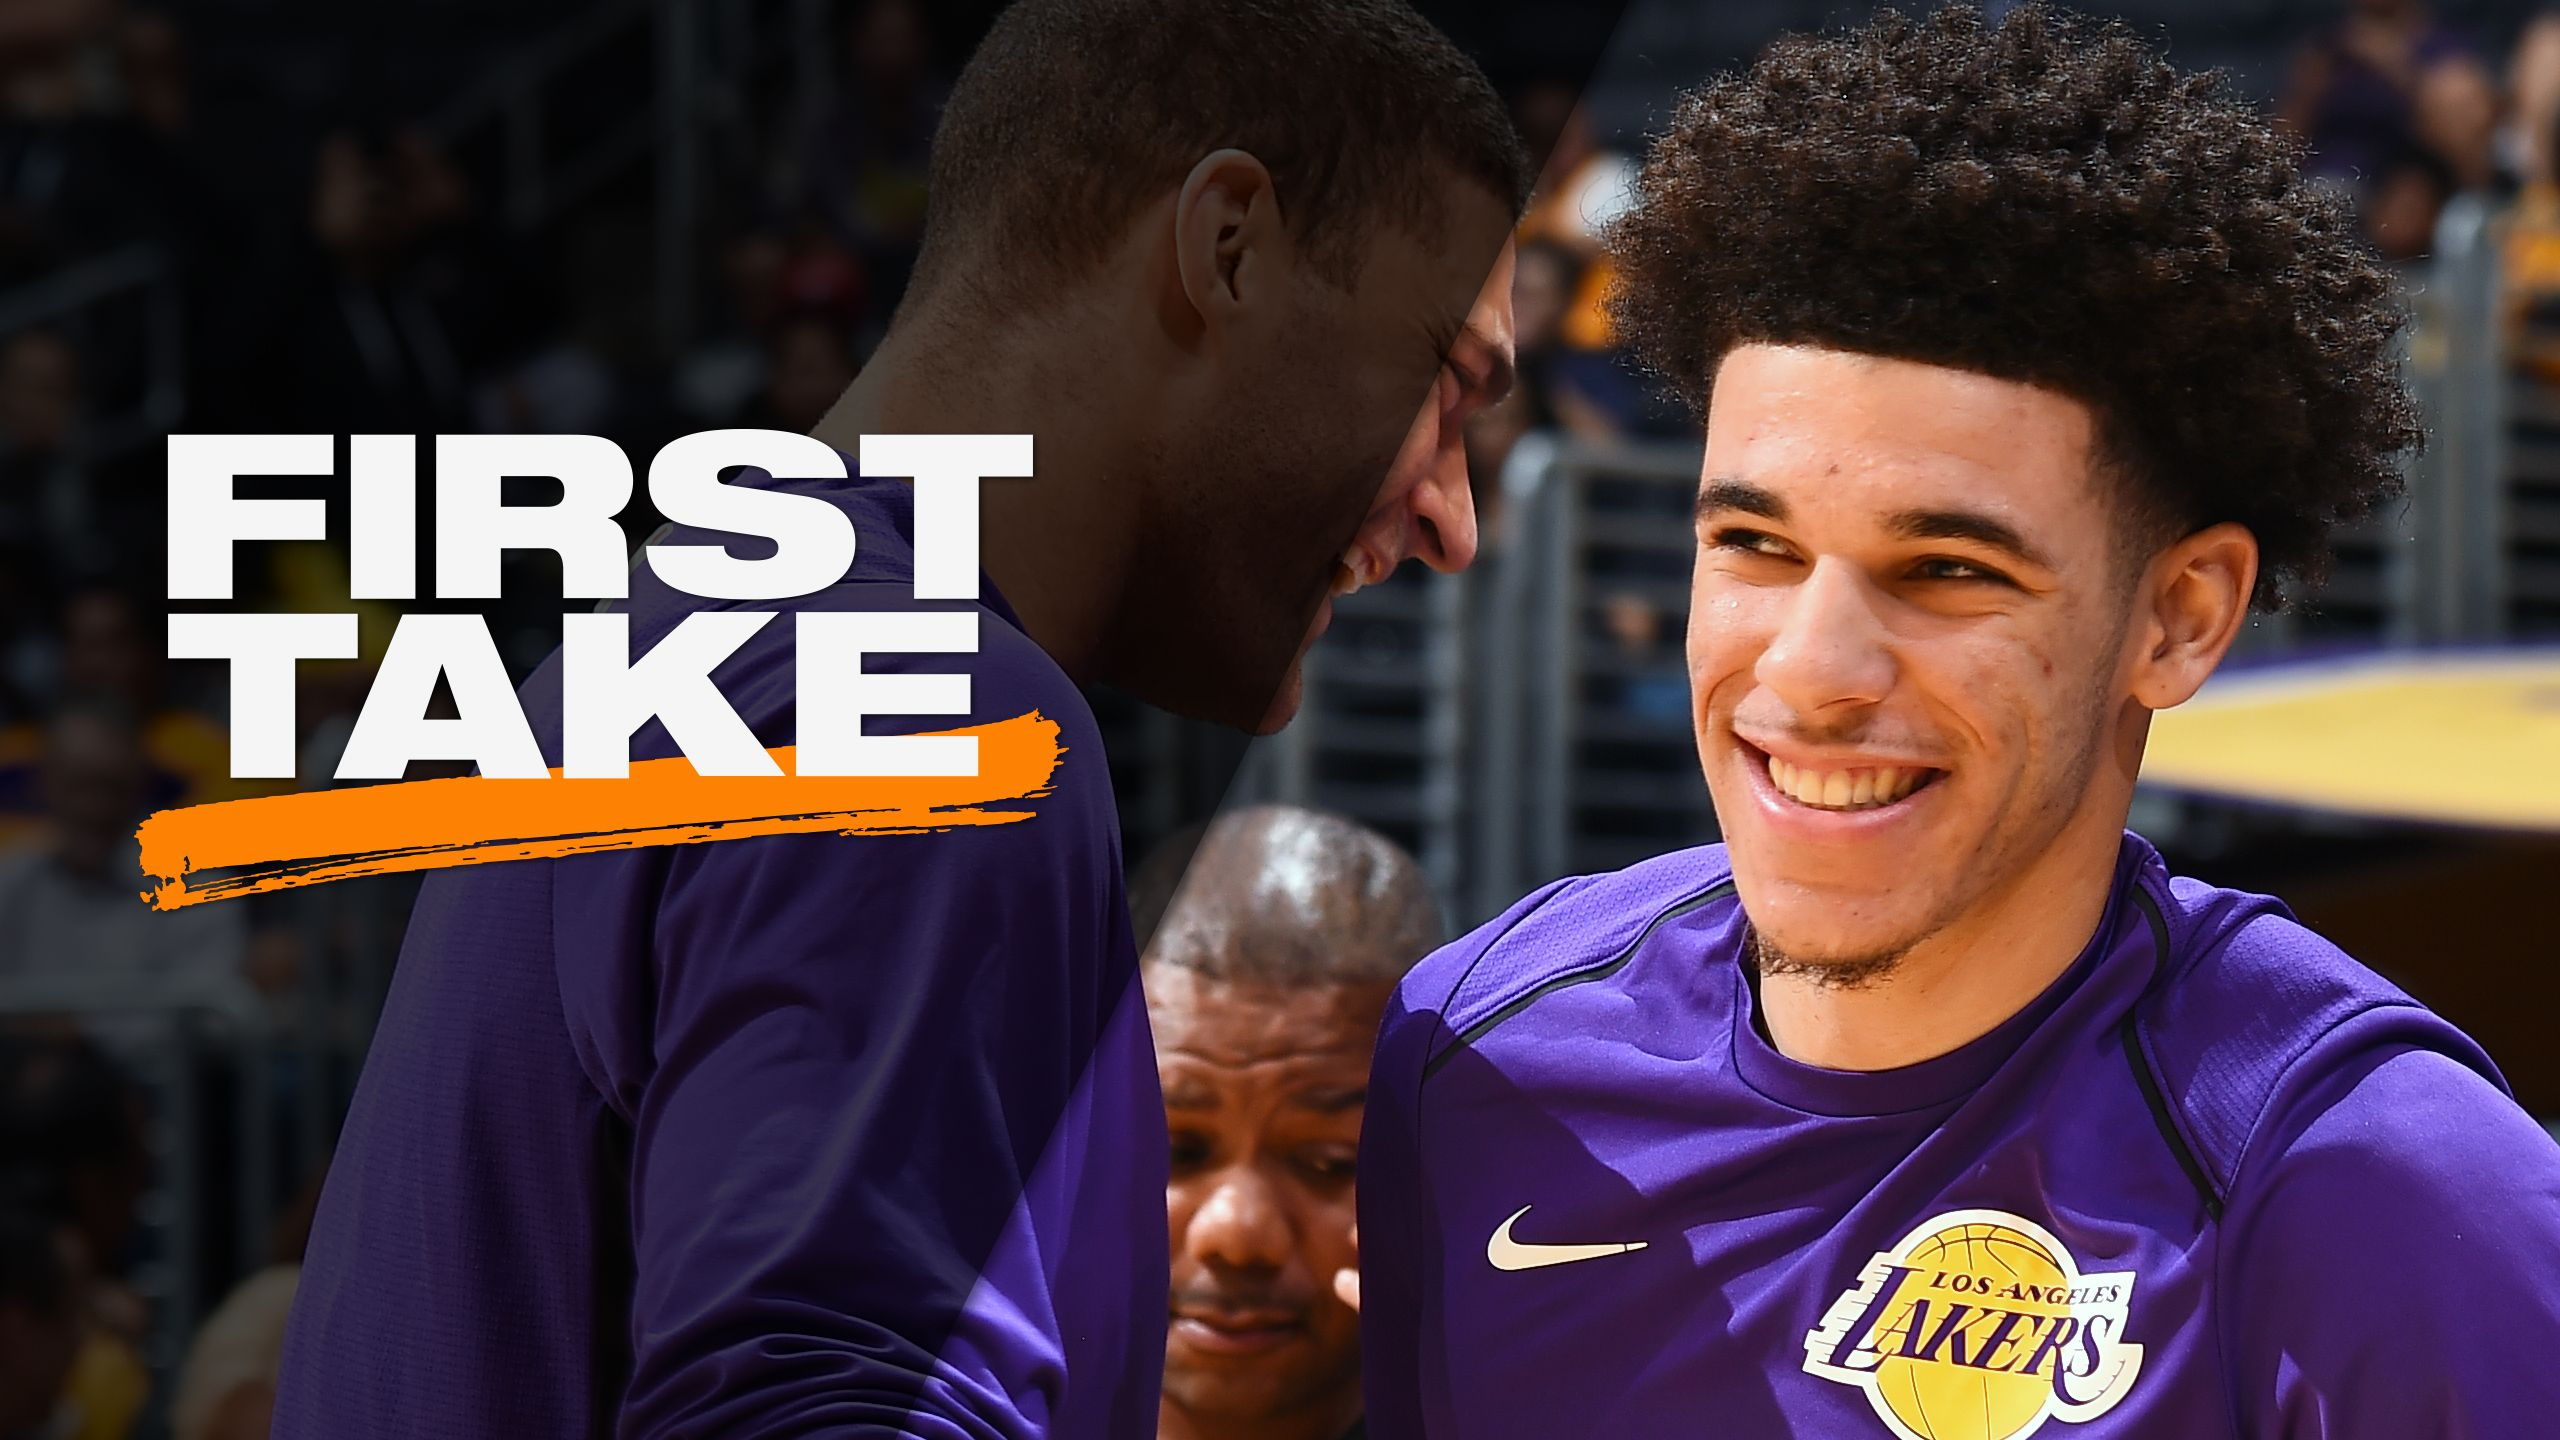 Thu, 10/19 - First Take